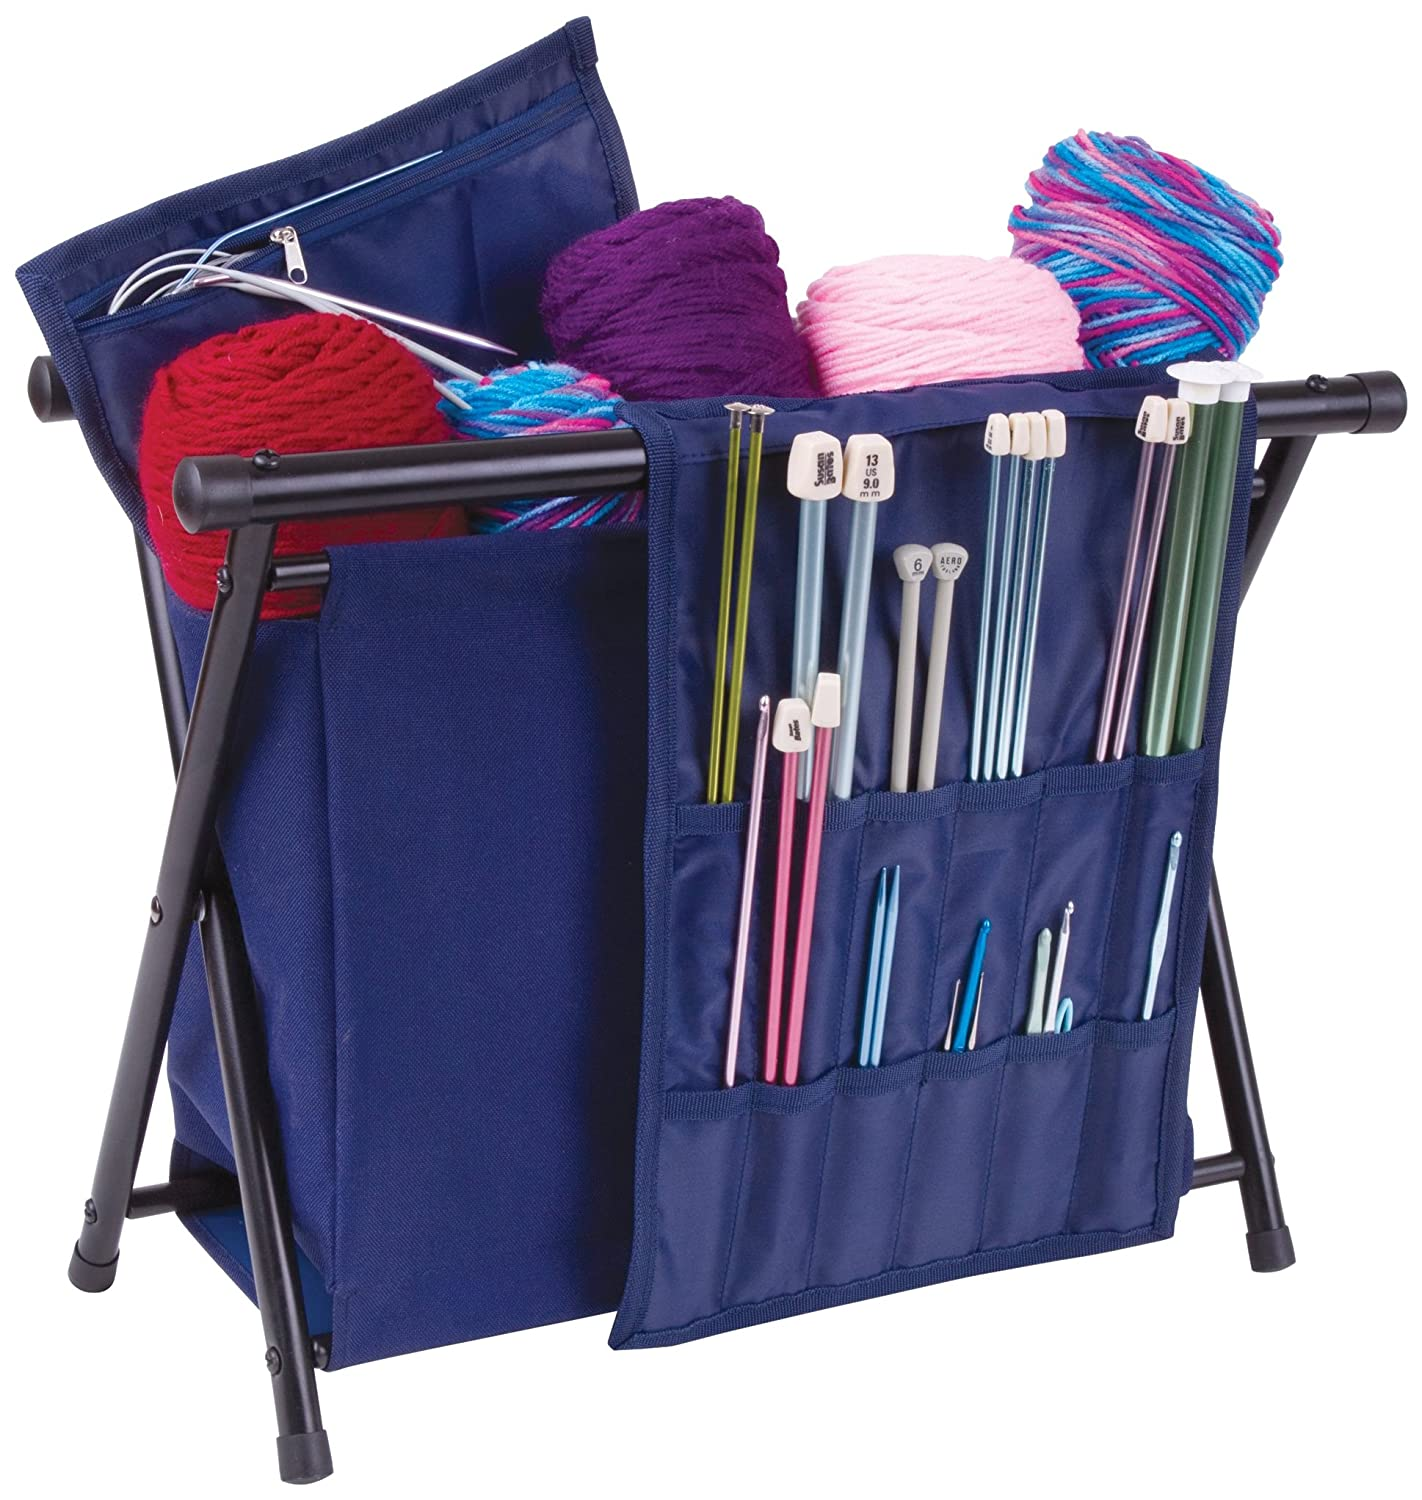 ArtBin 6933AM Needle Arts Caddy ARUFZ